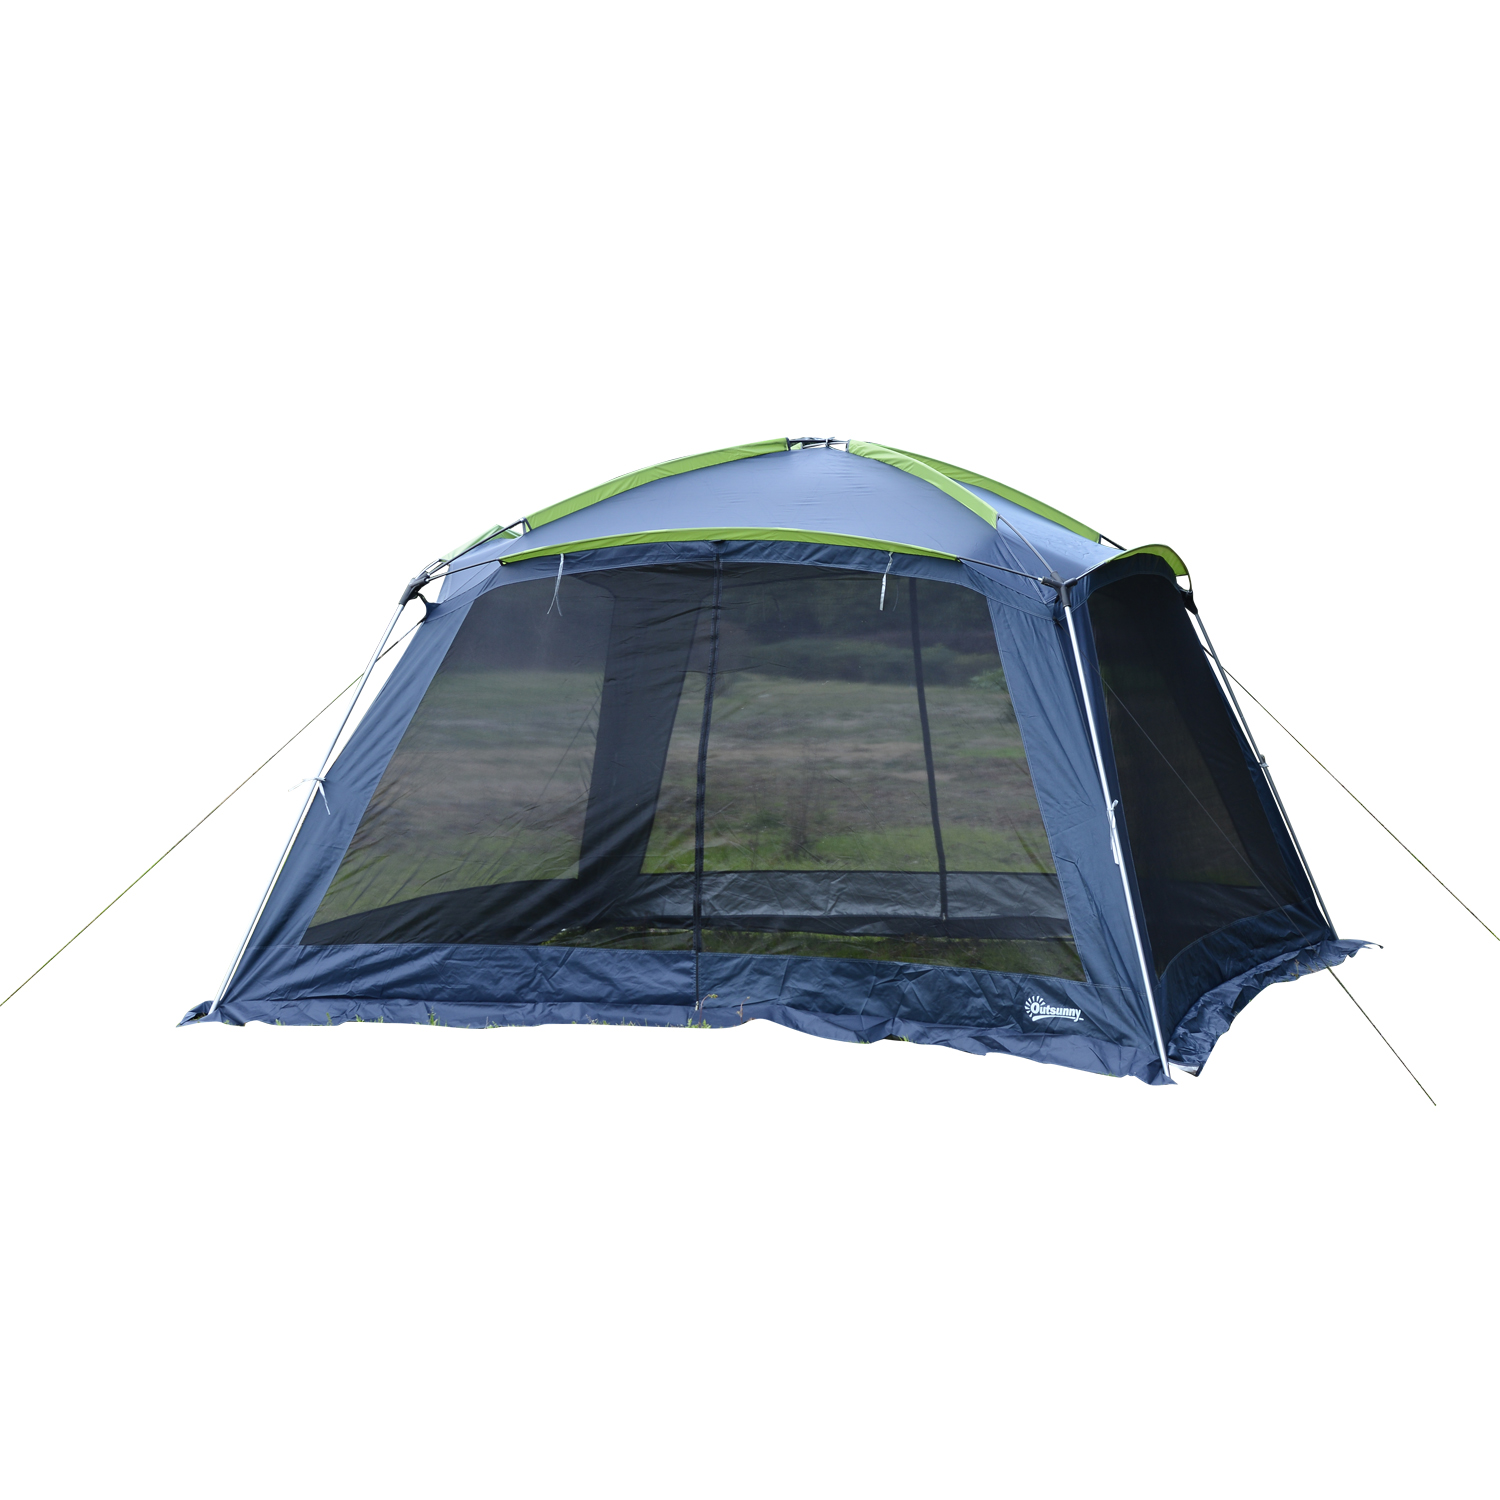 Outsunny 12 x 12 Mesh Portable Outdoor Screen House Shelter Dark Blue by Outsunny